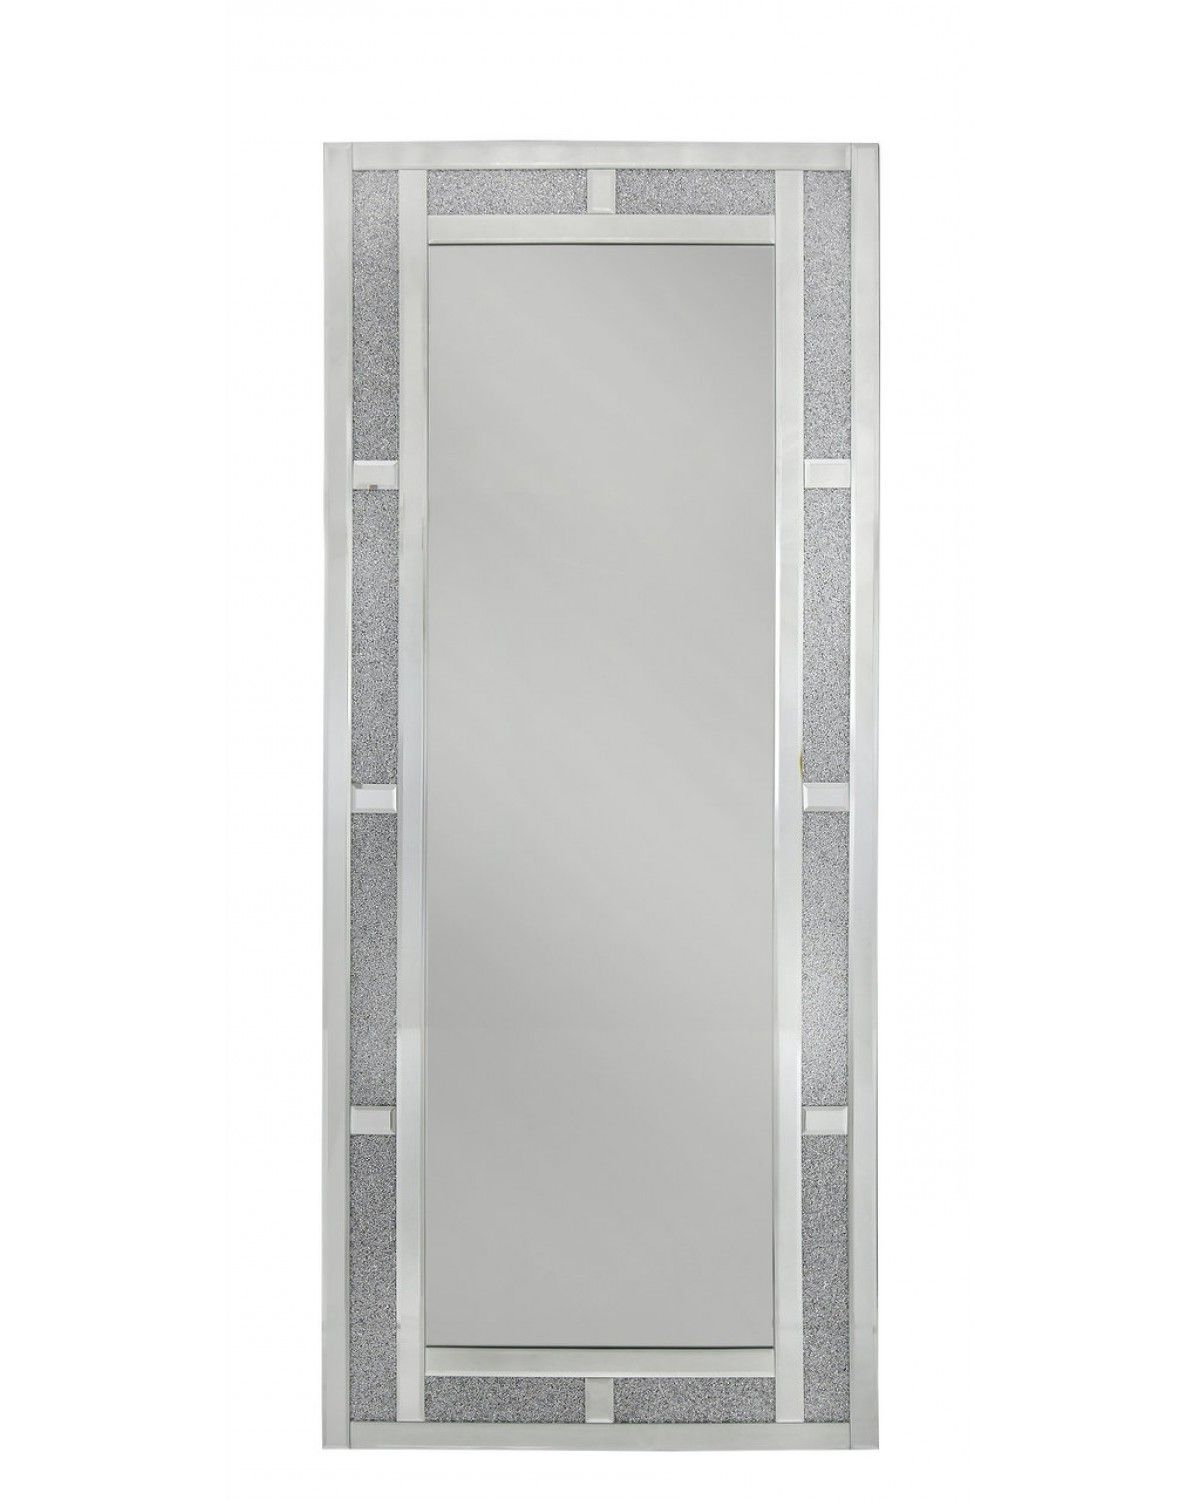 Most Recent Oblong Wall Mirrors Within Large Italian Collection Crystal Brick Effect Oblong Wall Mirror (View 7 of 20)